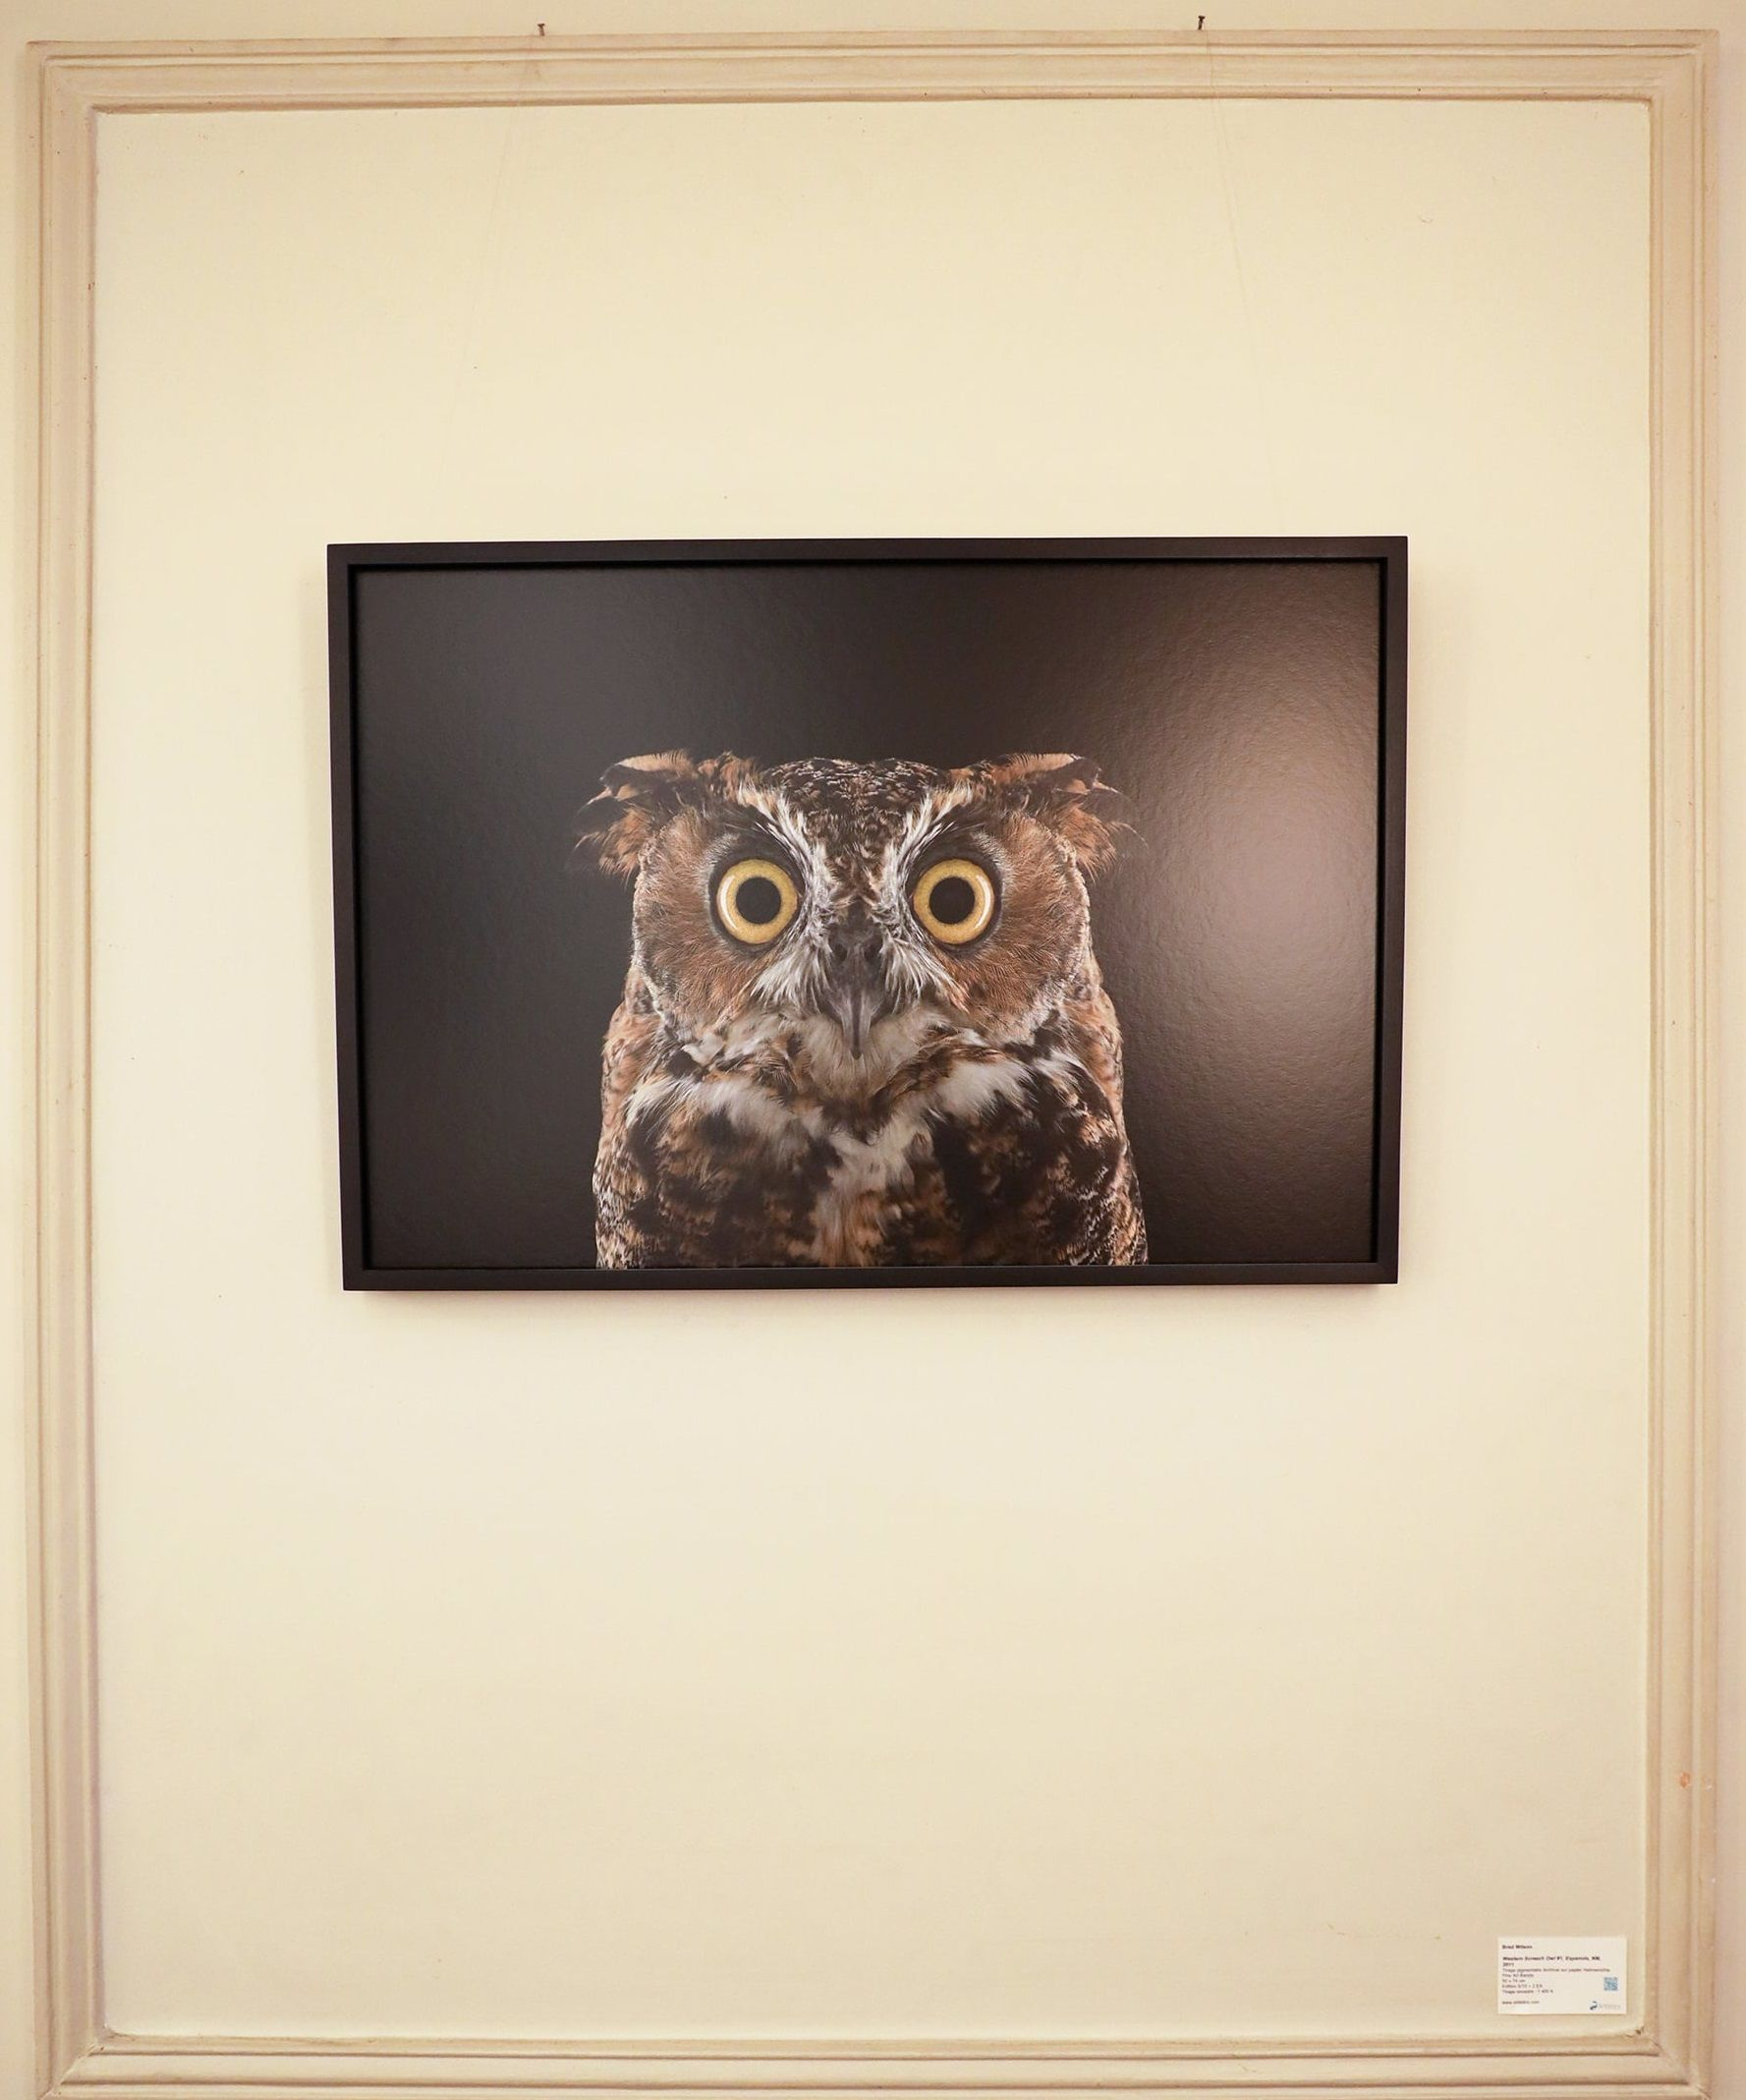 Great Horned Owl #3, Espanola, NM, 2011,Brad Wilson,Photographie, detail 1